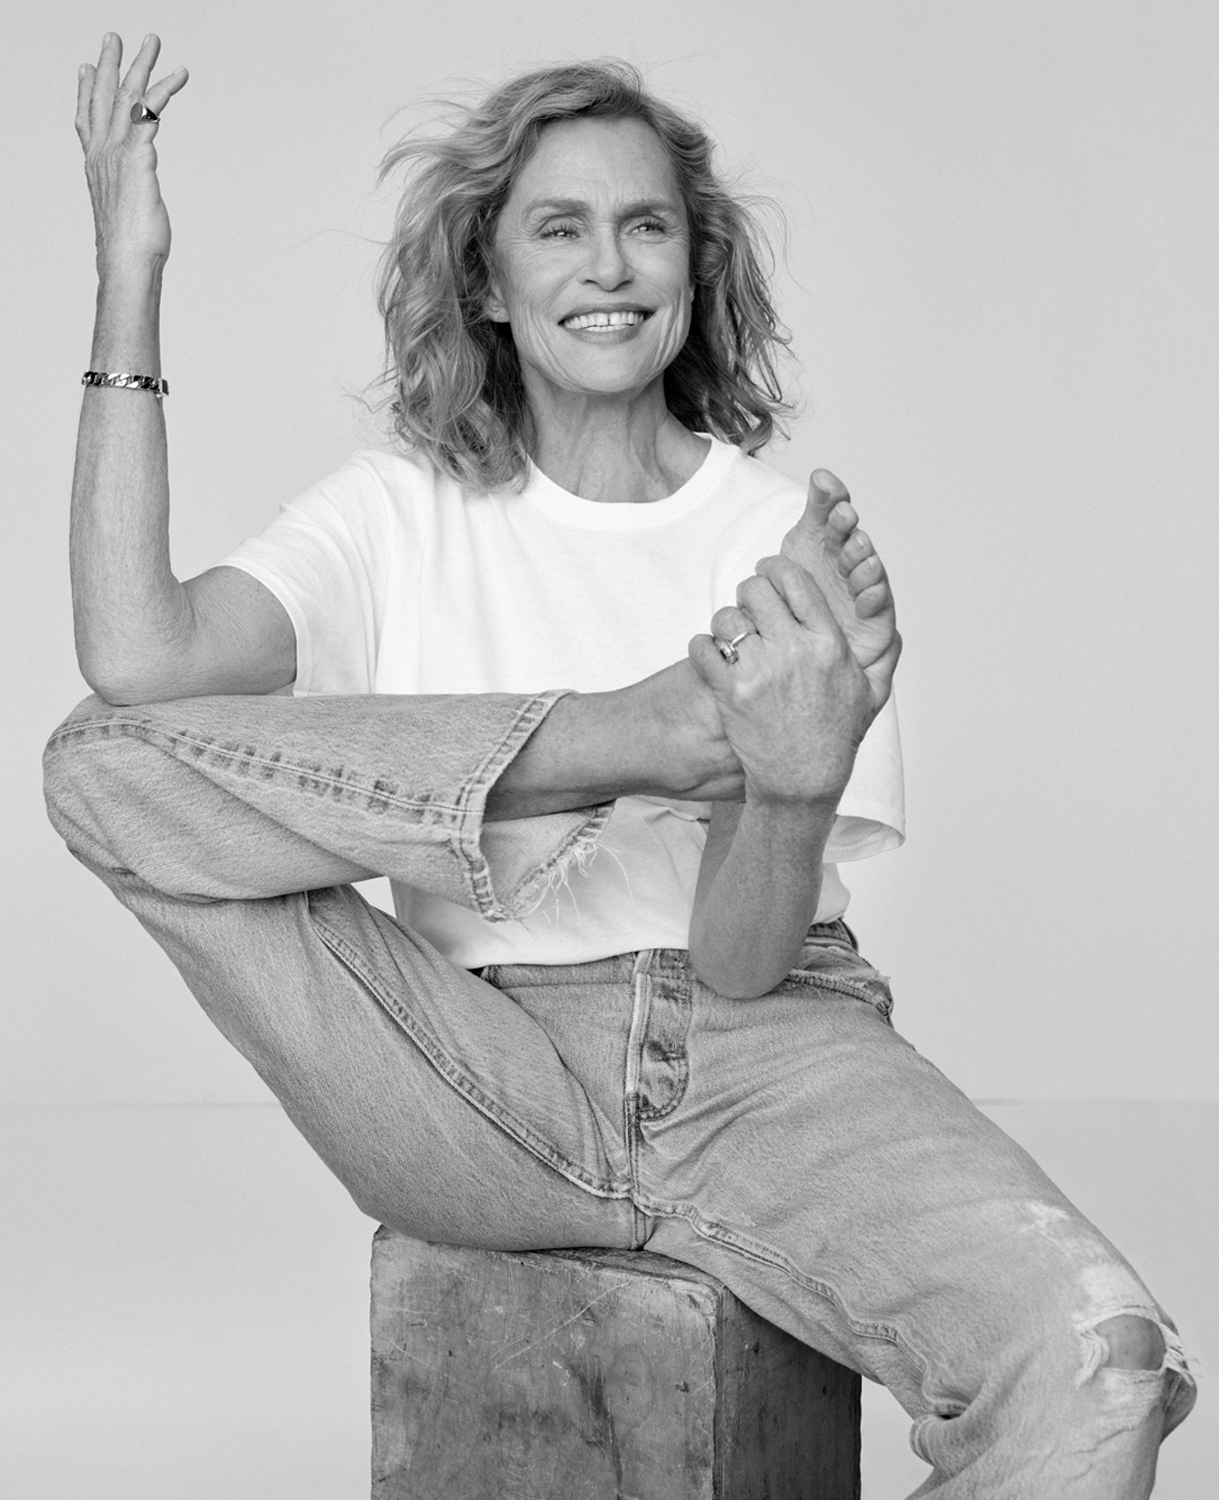 UNCONDITIONAL_7_LAUREN_HUTTON-7.JPG